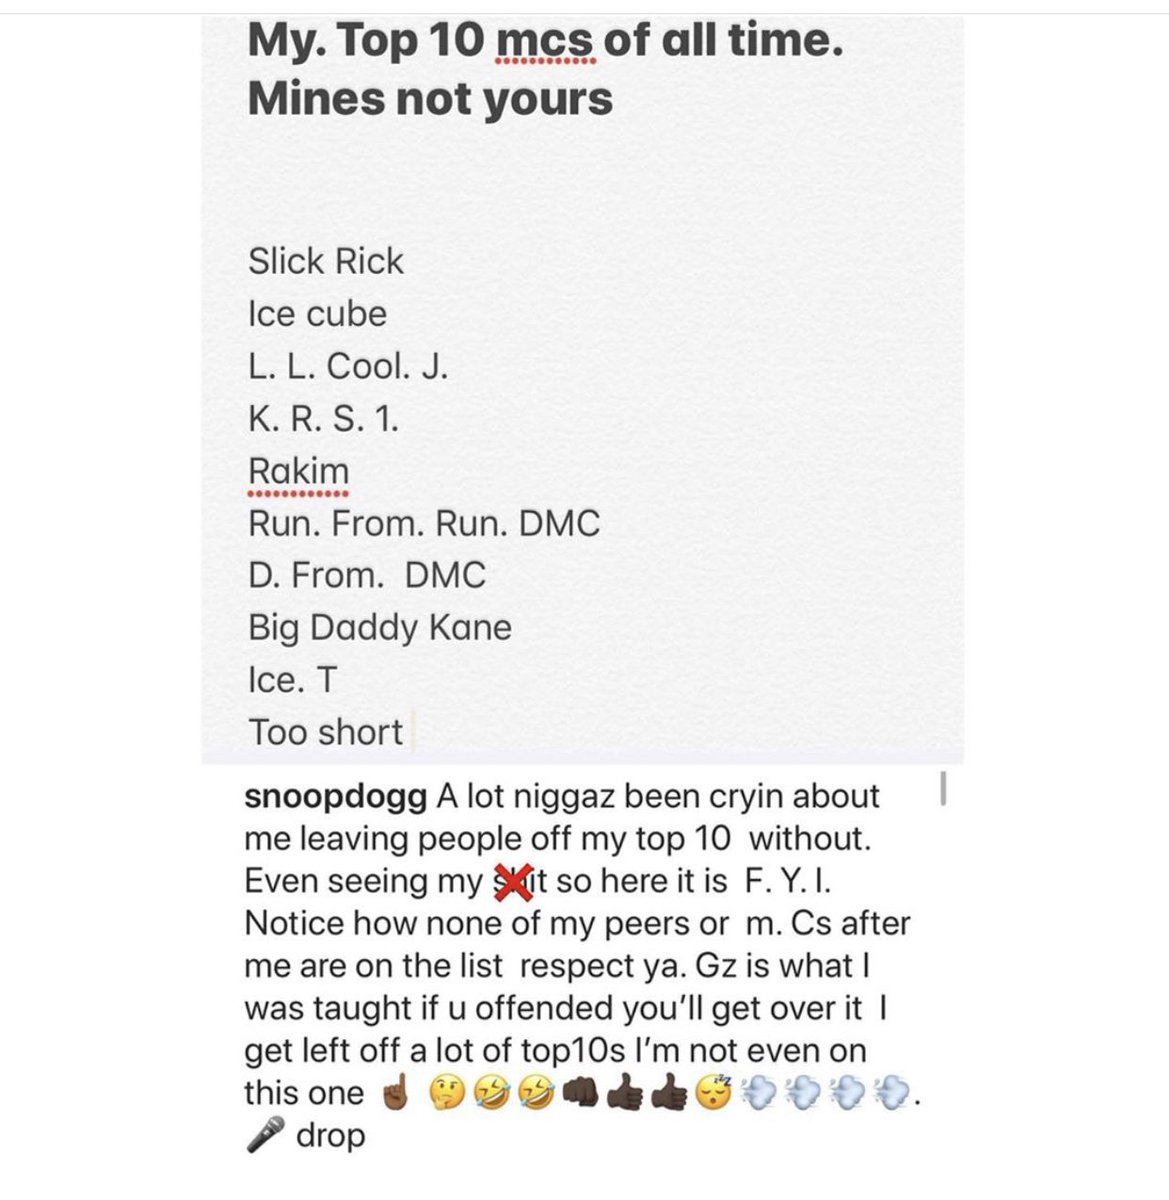 #SnoopDogg reveals his Top 10 of all time! 👀 @SnoopDogg